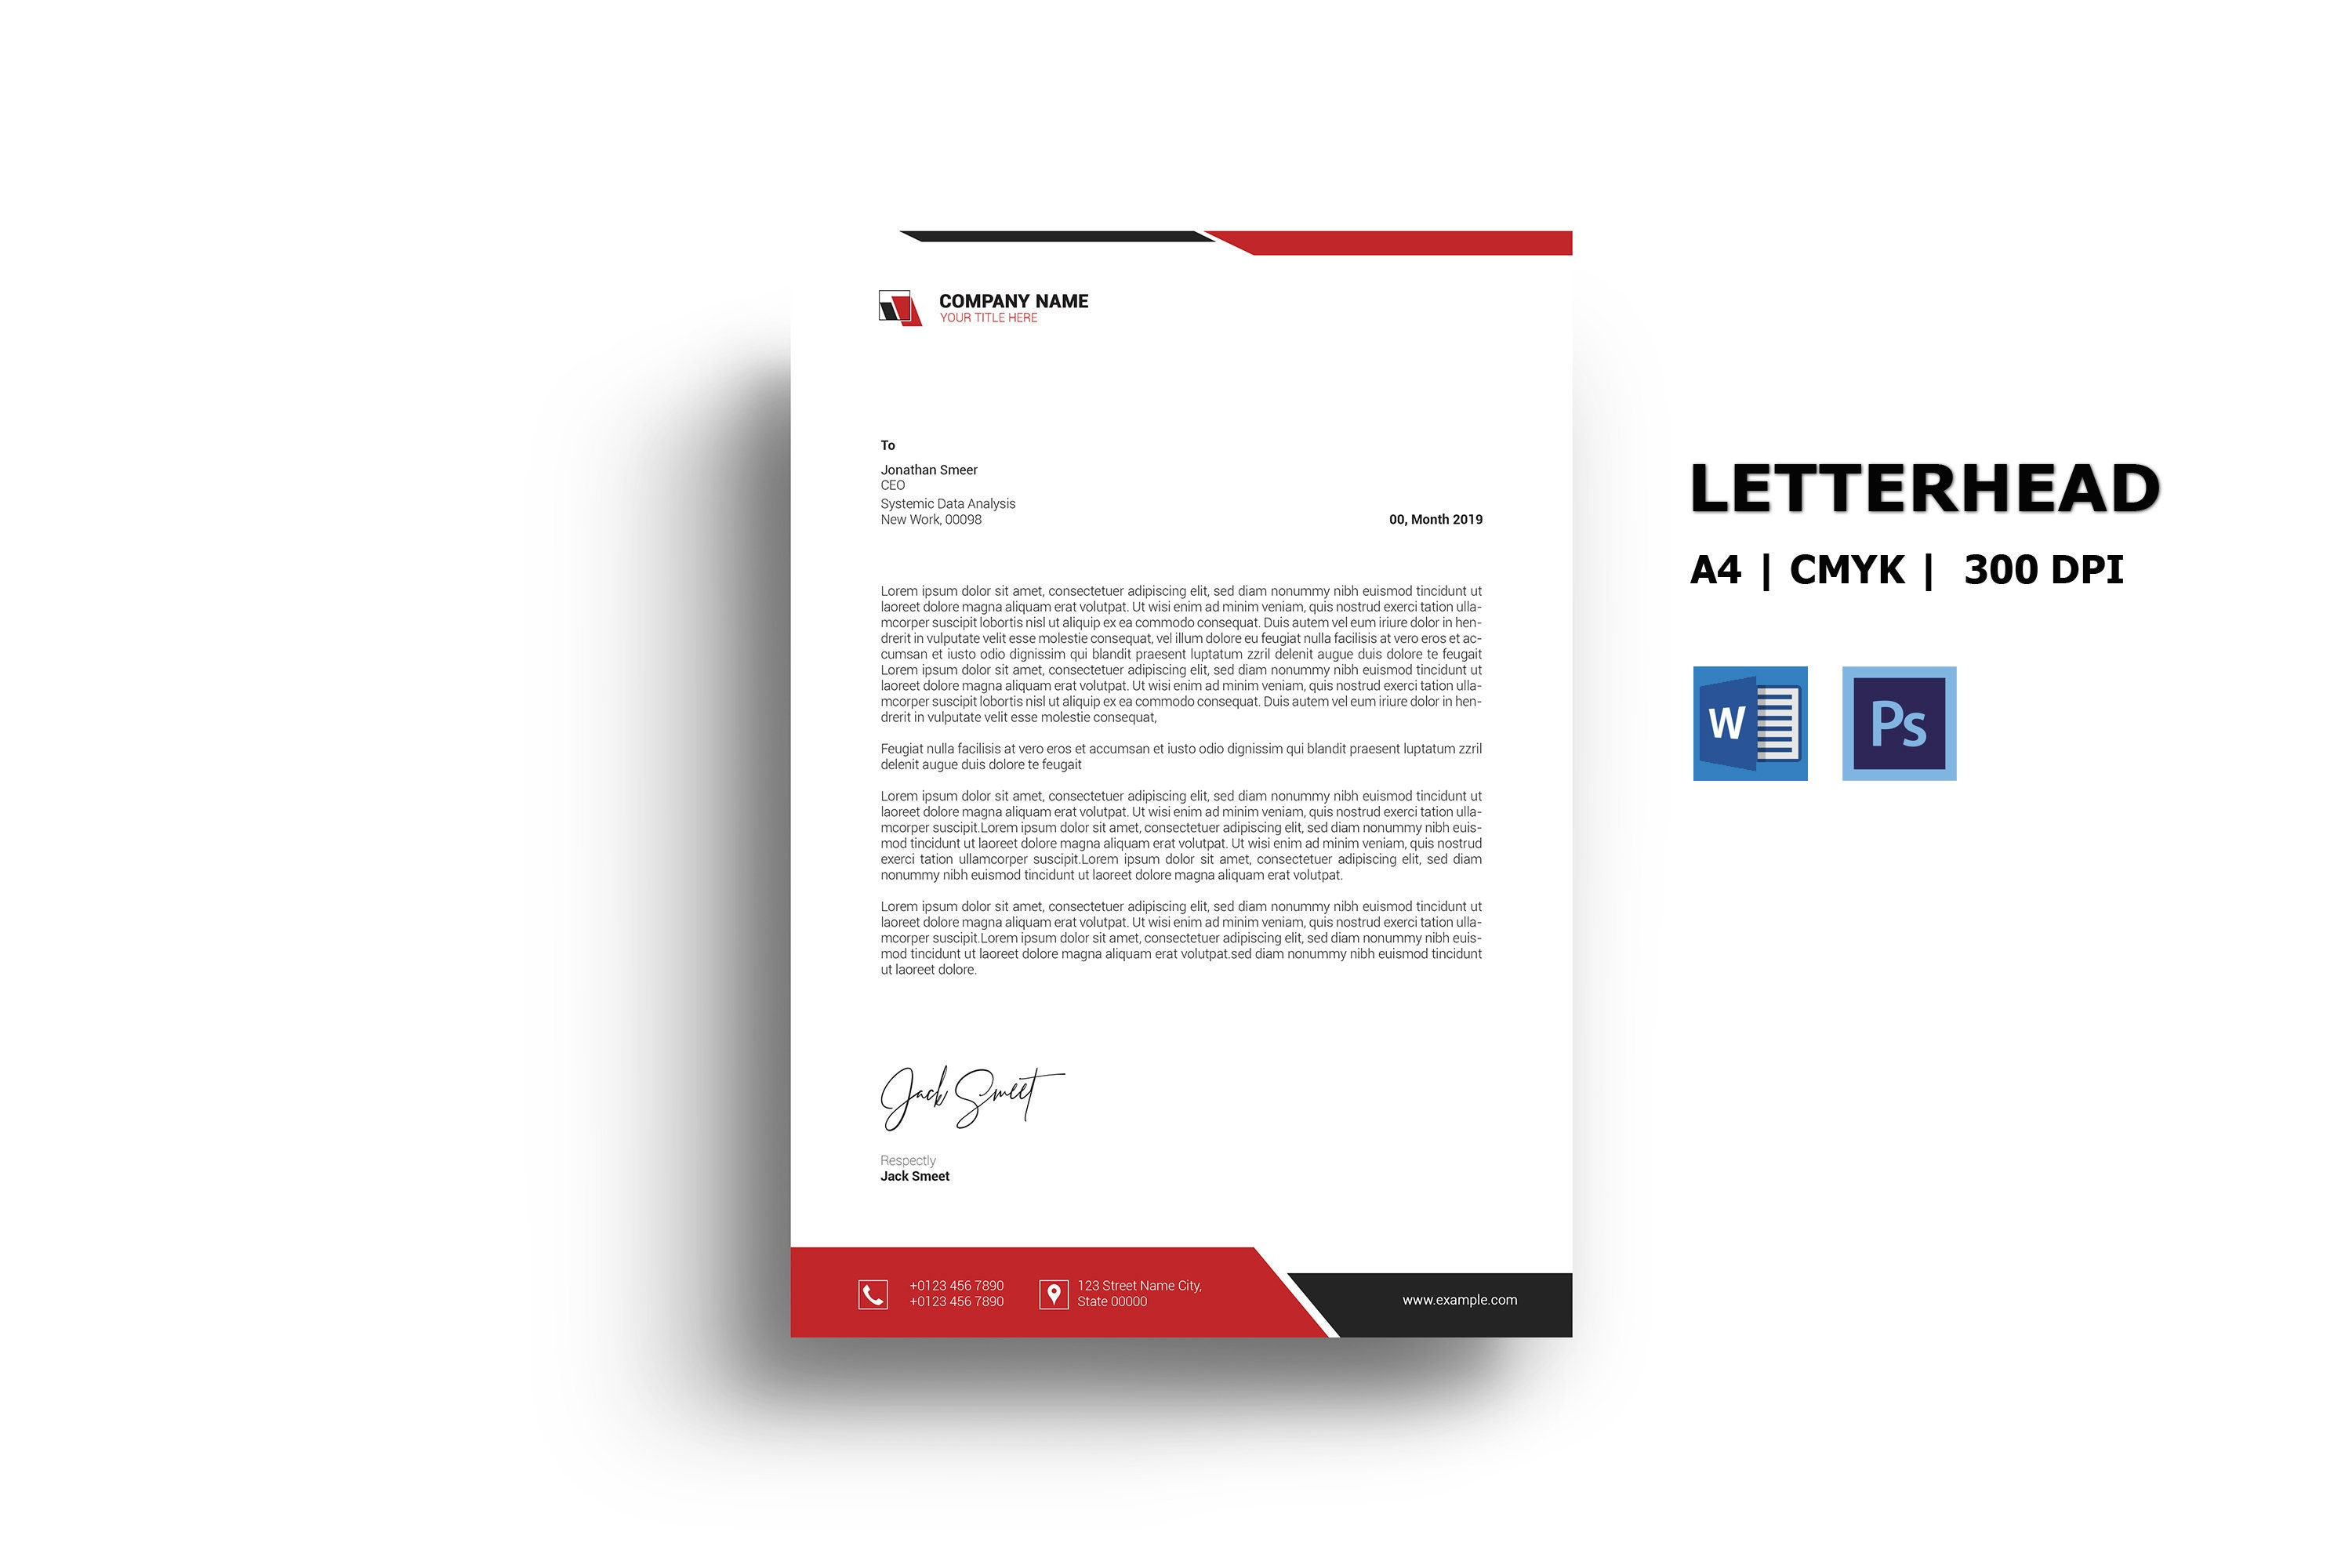 Company Letterhead Design  Ms Word & Photoshop Template For Header Templates For Word